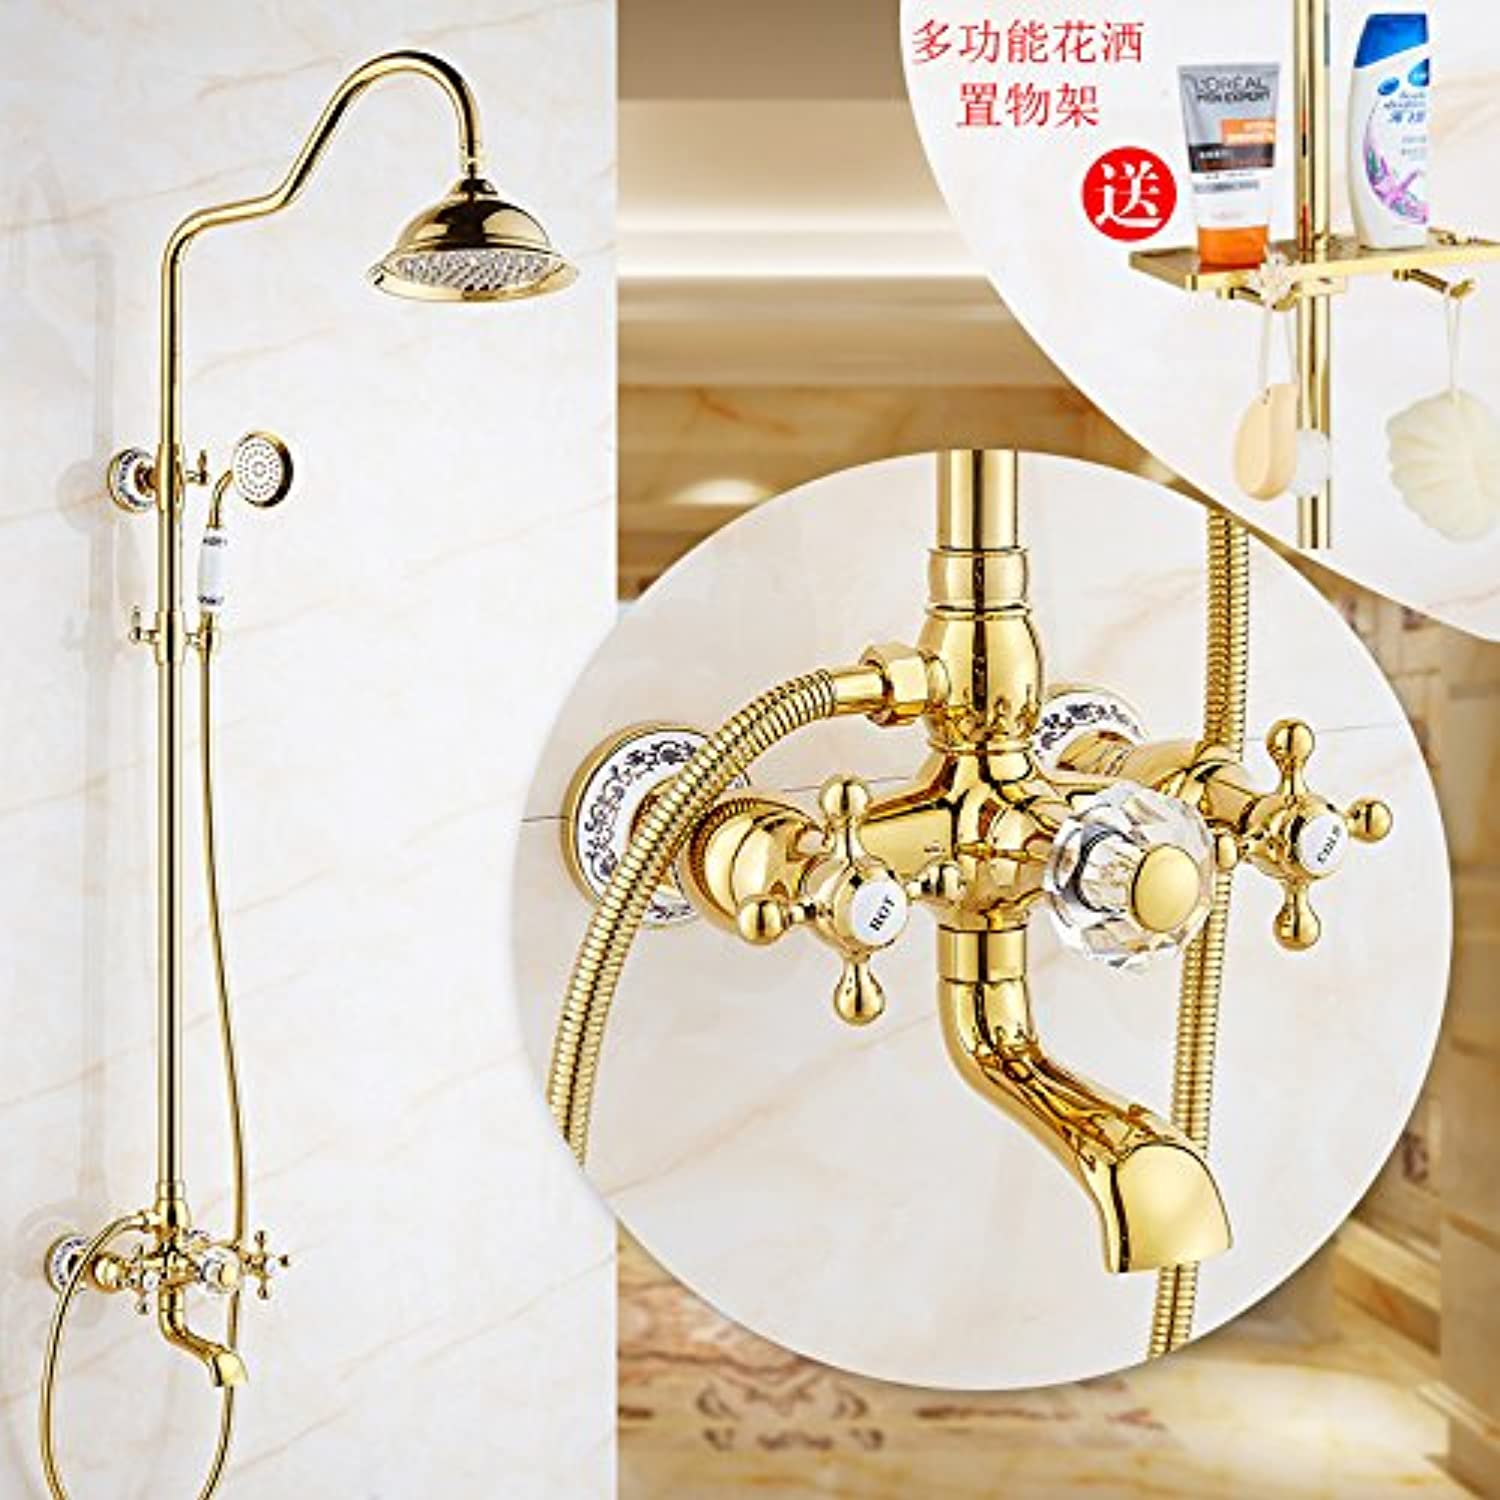 Hlluya Professional Sink Mixer Tap Kitchen Faucet The golden showers shower kit full copper antique Bath Faucet antique rain shower, ceramic, C